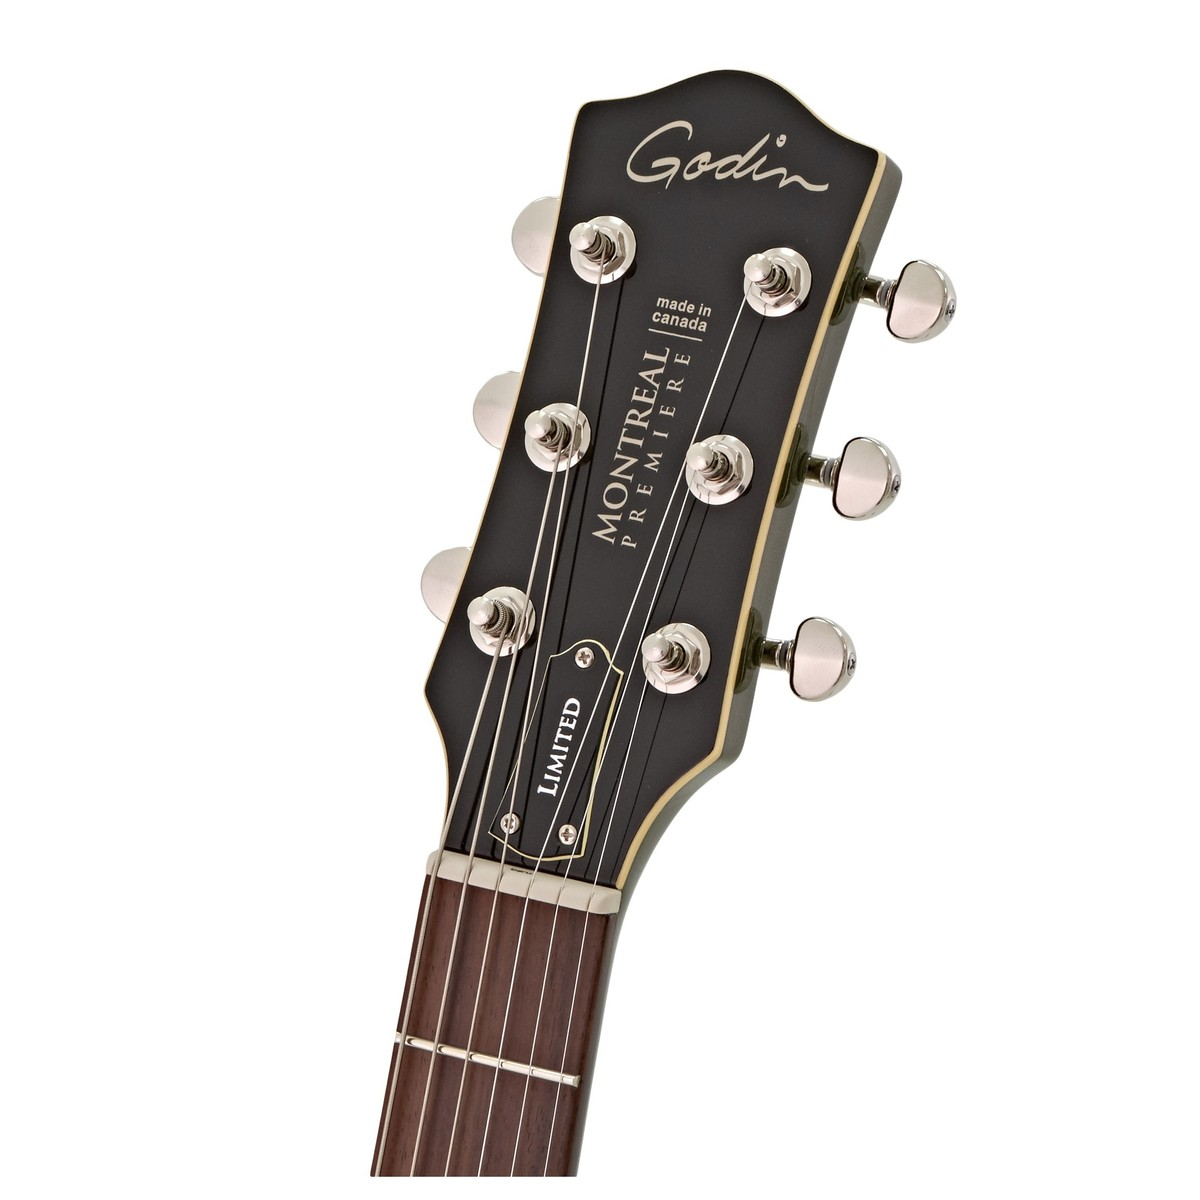 Godin Montreal Premiere Ltd W Bigsby Desert Green At Gear4music Re Switching Options For P90 Humbucker Combination